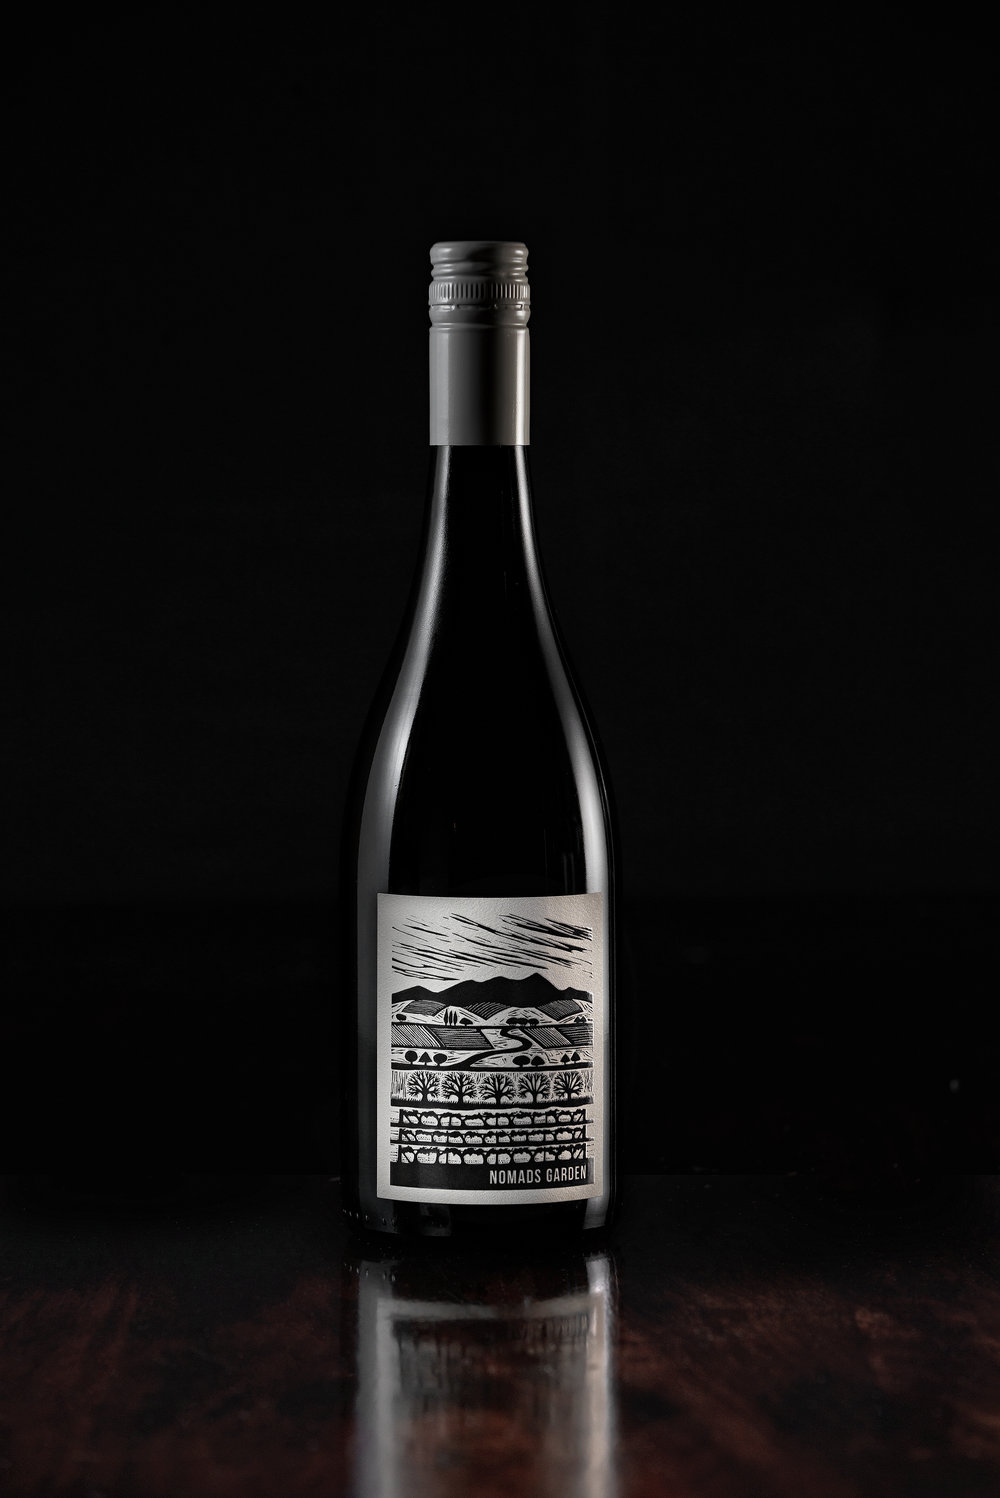 2018 DOLCETTO - Handmade - Hand Plunged - Basket Pressed - Wild Yeast Ferment - Unfined - No Enzyme Added - No Acid Added - Barrel Aged on LeesVineyard ~ Eurangie Park, King ValleySourced from uppermost vineyard in the King Valley, the Eurangie Park Vineyard is approximately 6km further up the valley past the village of Cheshunt and is run by one of the best in the game, Richard Carson. Paul has had a relationship with Richard dating back some 20+ years. When we visited to have a look at the Sauvignon Blanc Richard was very keen for us to have a look at his Dolcetto. The fruit looked great, the Dolcetto comes from a section of the Vineyard steep on the wall of the Valley, it was settled, Dolcetto would be our experimental red for 2018. On the drive home it dawned on us we knew nothing about the variety, after some research we found it to be bright fruited, low tannin variety. Plenty of scope to have some fun!Picked in the early morning at 11.7 baume before being destemmed but not crushed as to retain whole berries. To really get funky we put a layer of fresh pressed Sangiovese skins on the bottom of the fermenter before filling it up with the Dolcetto whole berries. Mainly because we could but also to give it a lick of tannin. A huge 40% of the free run juice was run off to ensure the wine had intensity of flavour and colour, we had learned to Australian Dolcetto has often in the past lacked backbone. The grapes were protected under CO2 prior to the natural wild yeast fermentation commencing 48 hours later. The ferment was allowed to rise to 30c then held, 3 weeks on skins before gentle basket pressing to seasoned French Oak Puncheons and Barriques between 4-6 years old. Oak of this age will impart very little, if any oak characteristics, instead we believe they are the best vessel for wines to age in. Oak is a natural living product that allows the wines breath and evolve with time, something not possible with stainless steel tanks.The Dolcetto then spent 12 months in oak on full lees (lees are the solids that drop and of the wine post fermentation) to build texture. The wine was then lightly filtered and bottled, before been given at least 3 months post bottling to settle. This was a complete surprise packet, a super perfumed wine with plenty of attractive fleshy bright red fruit and silky tannins.